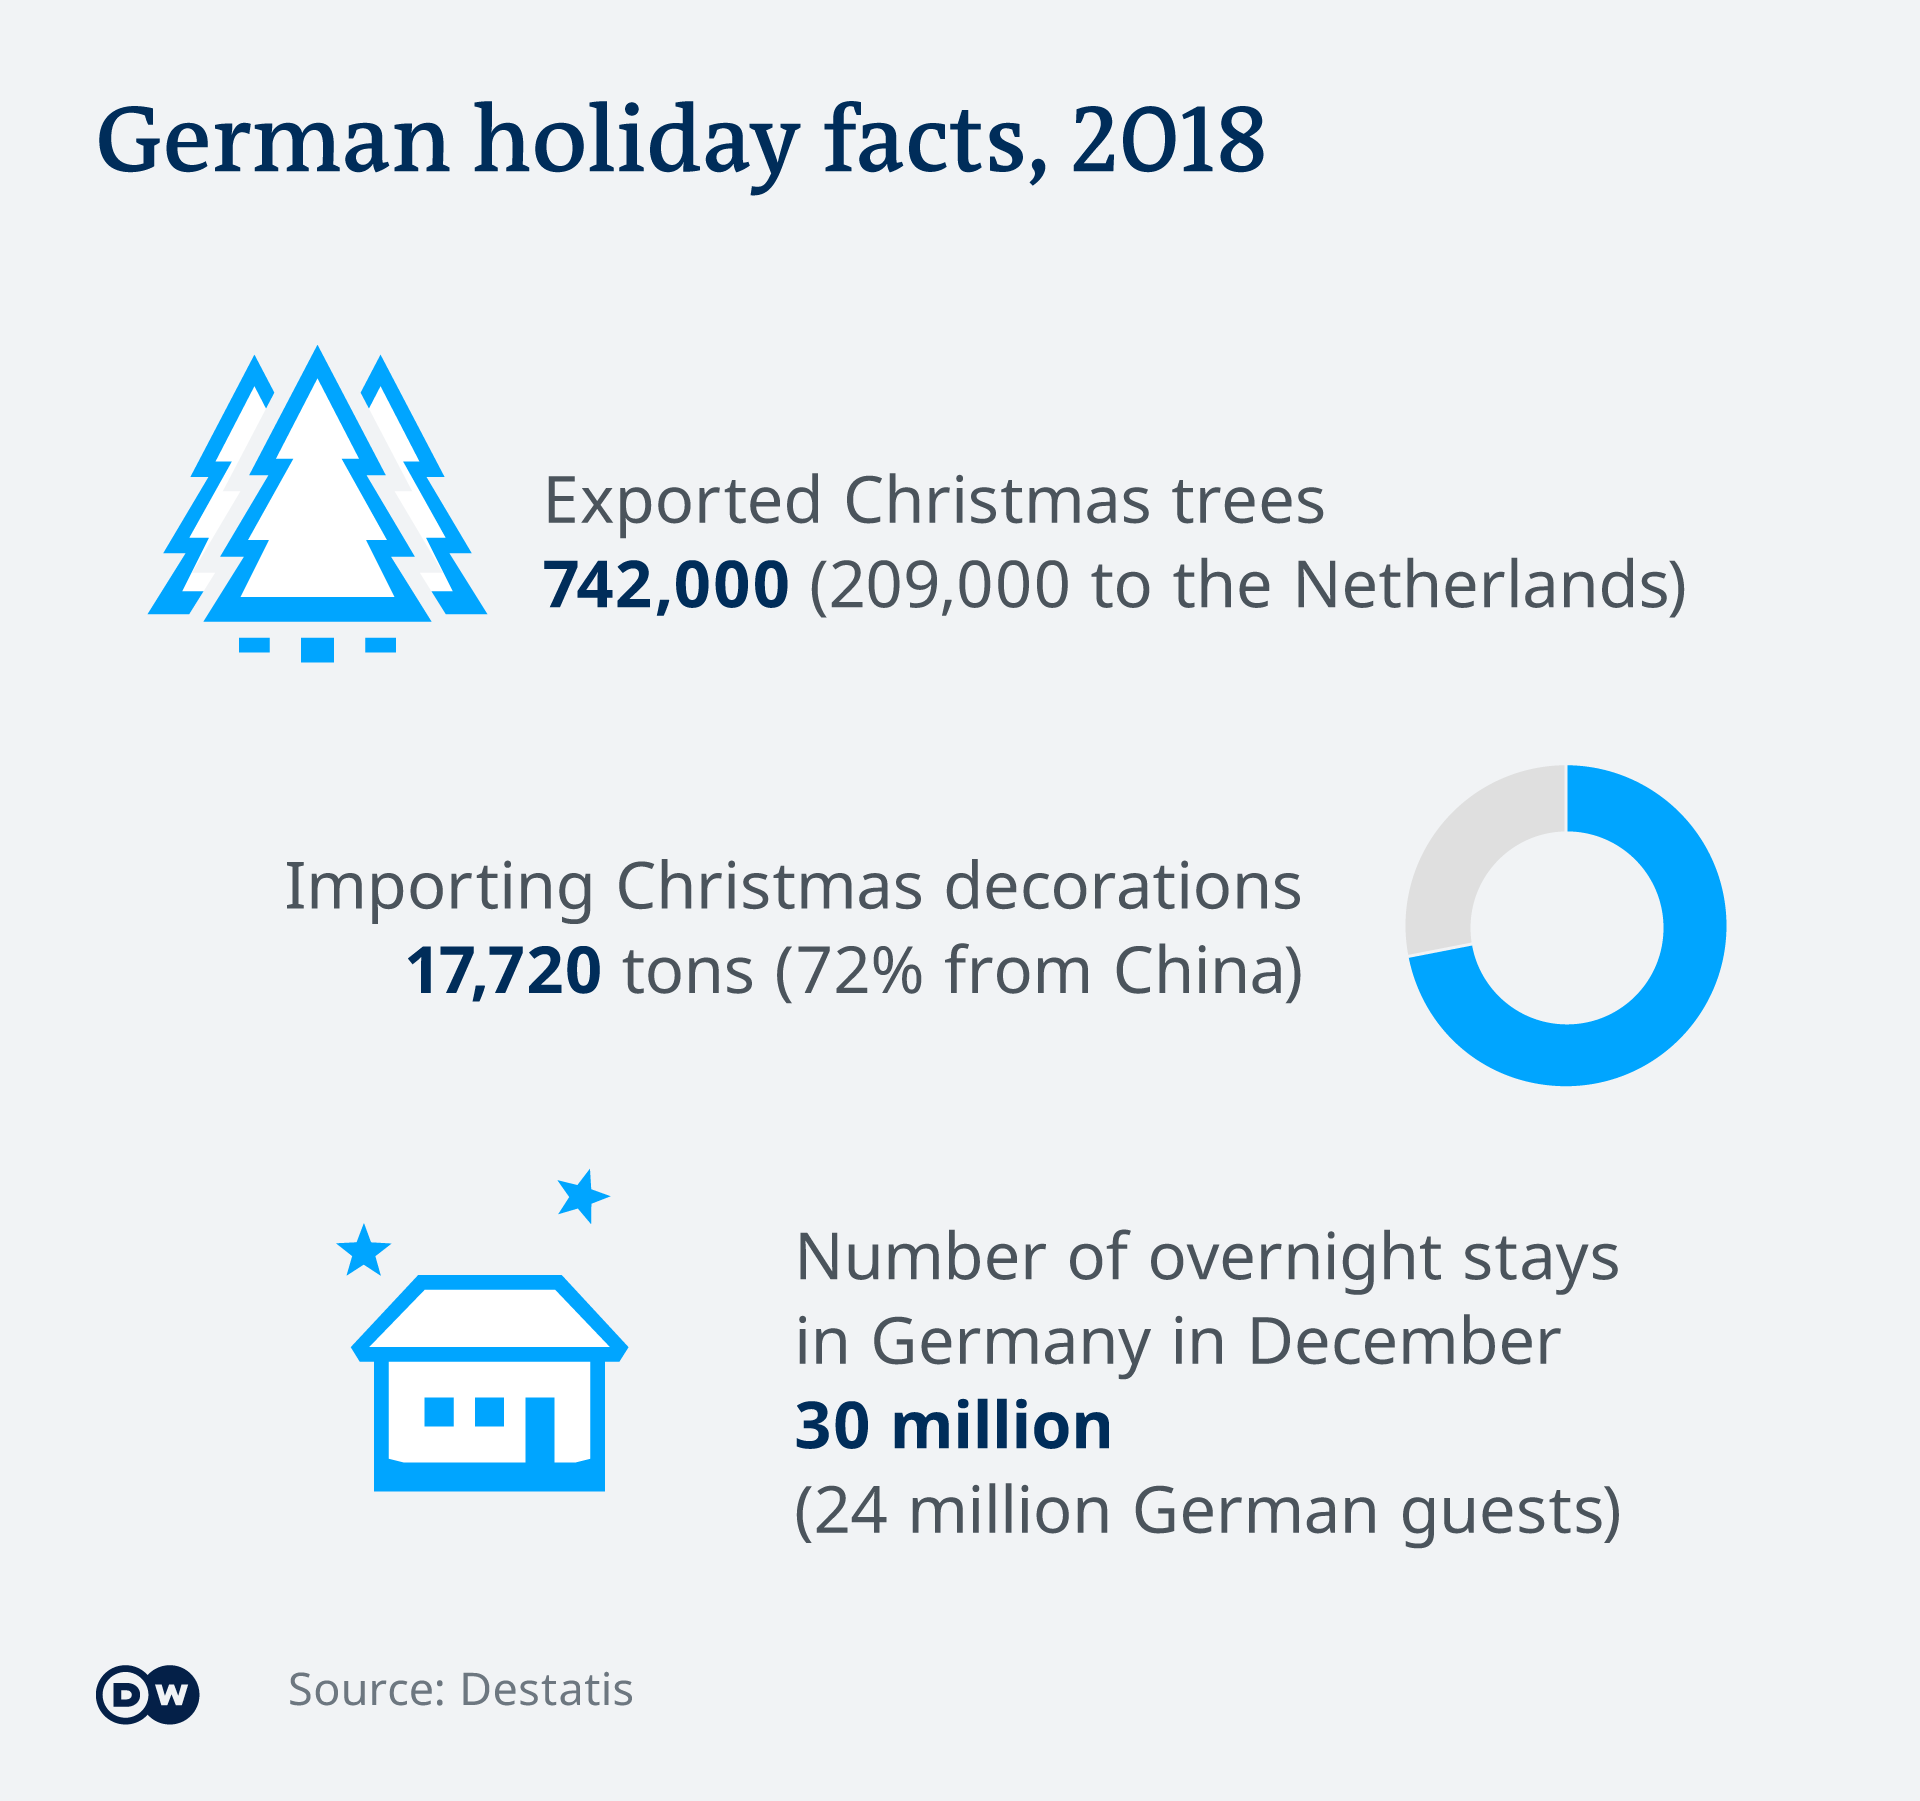 German holiday facts 2018